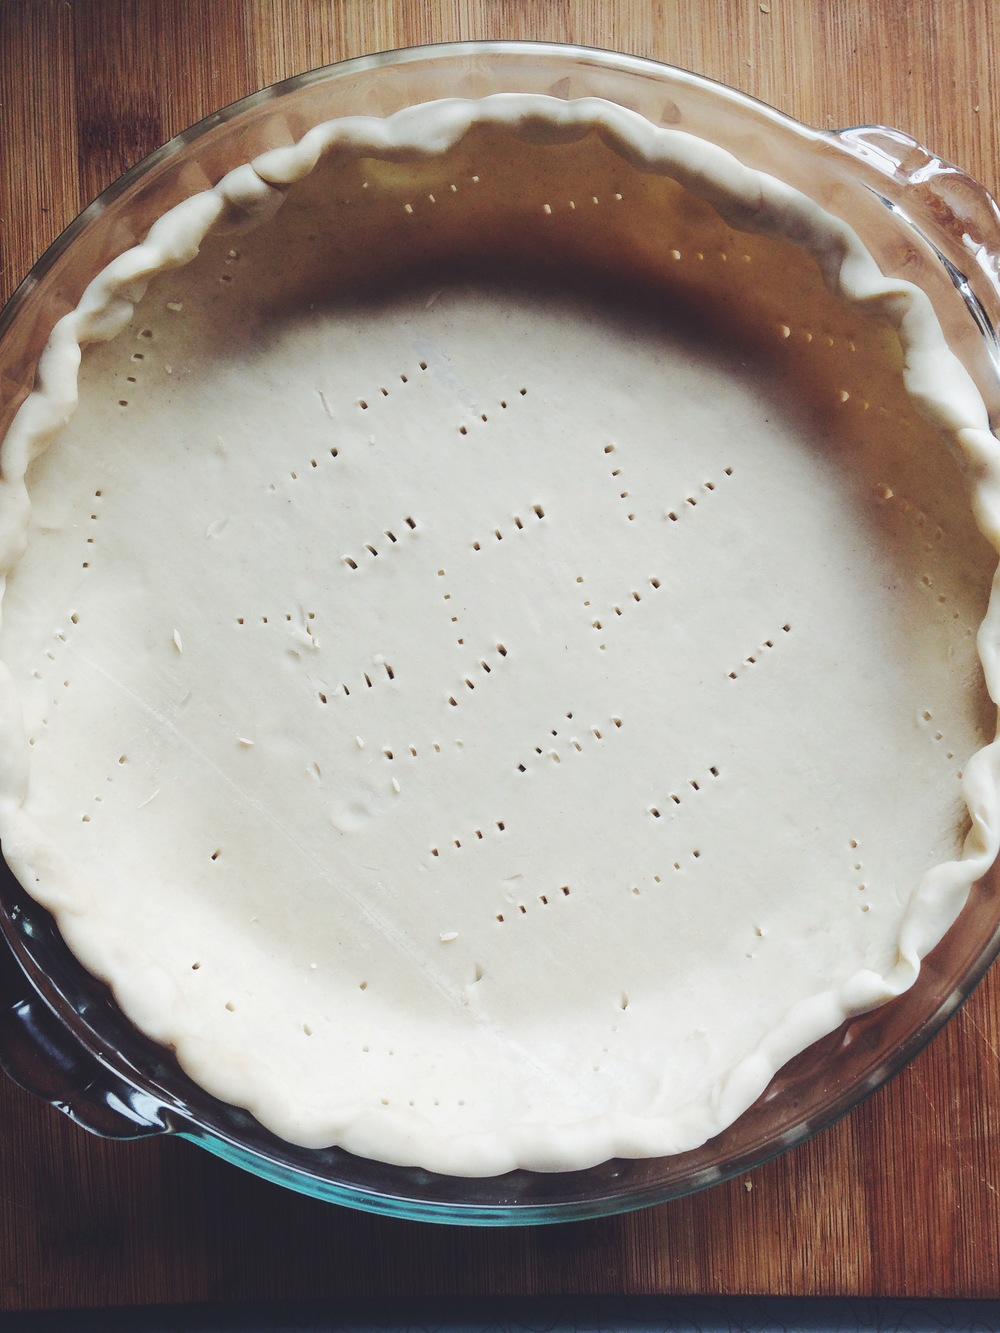 My Nonny used to read Taste of Home magazine so I tend to look to their website for comfort food favorites; it reminds me of her.  My Dad, Nonny's son, has been pining after Banana Cream pie, so for Father's Day I finally granted his wish, with this easy to prepare  recipe .